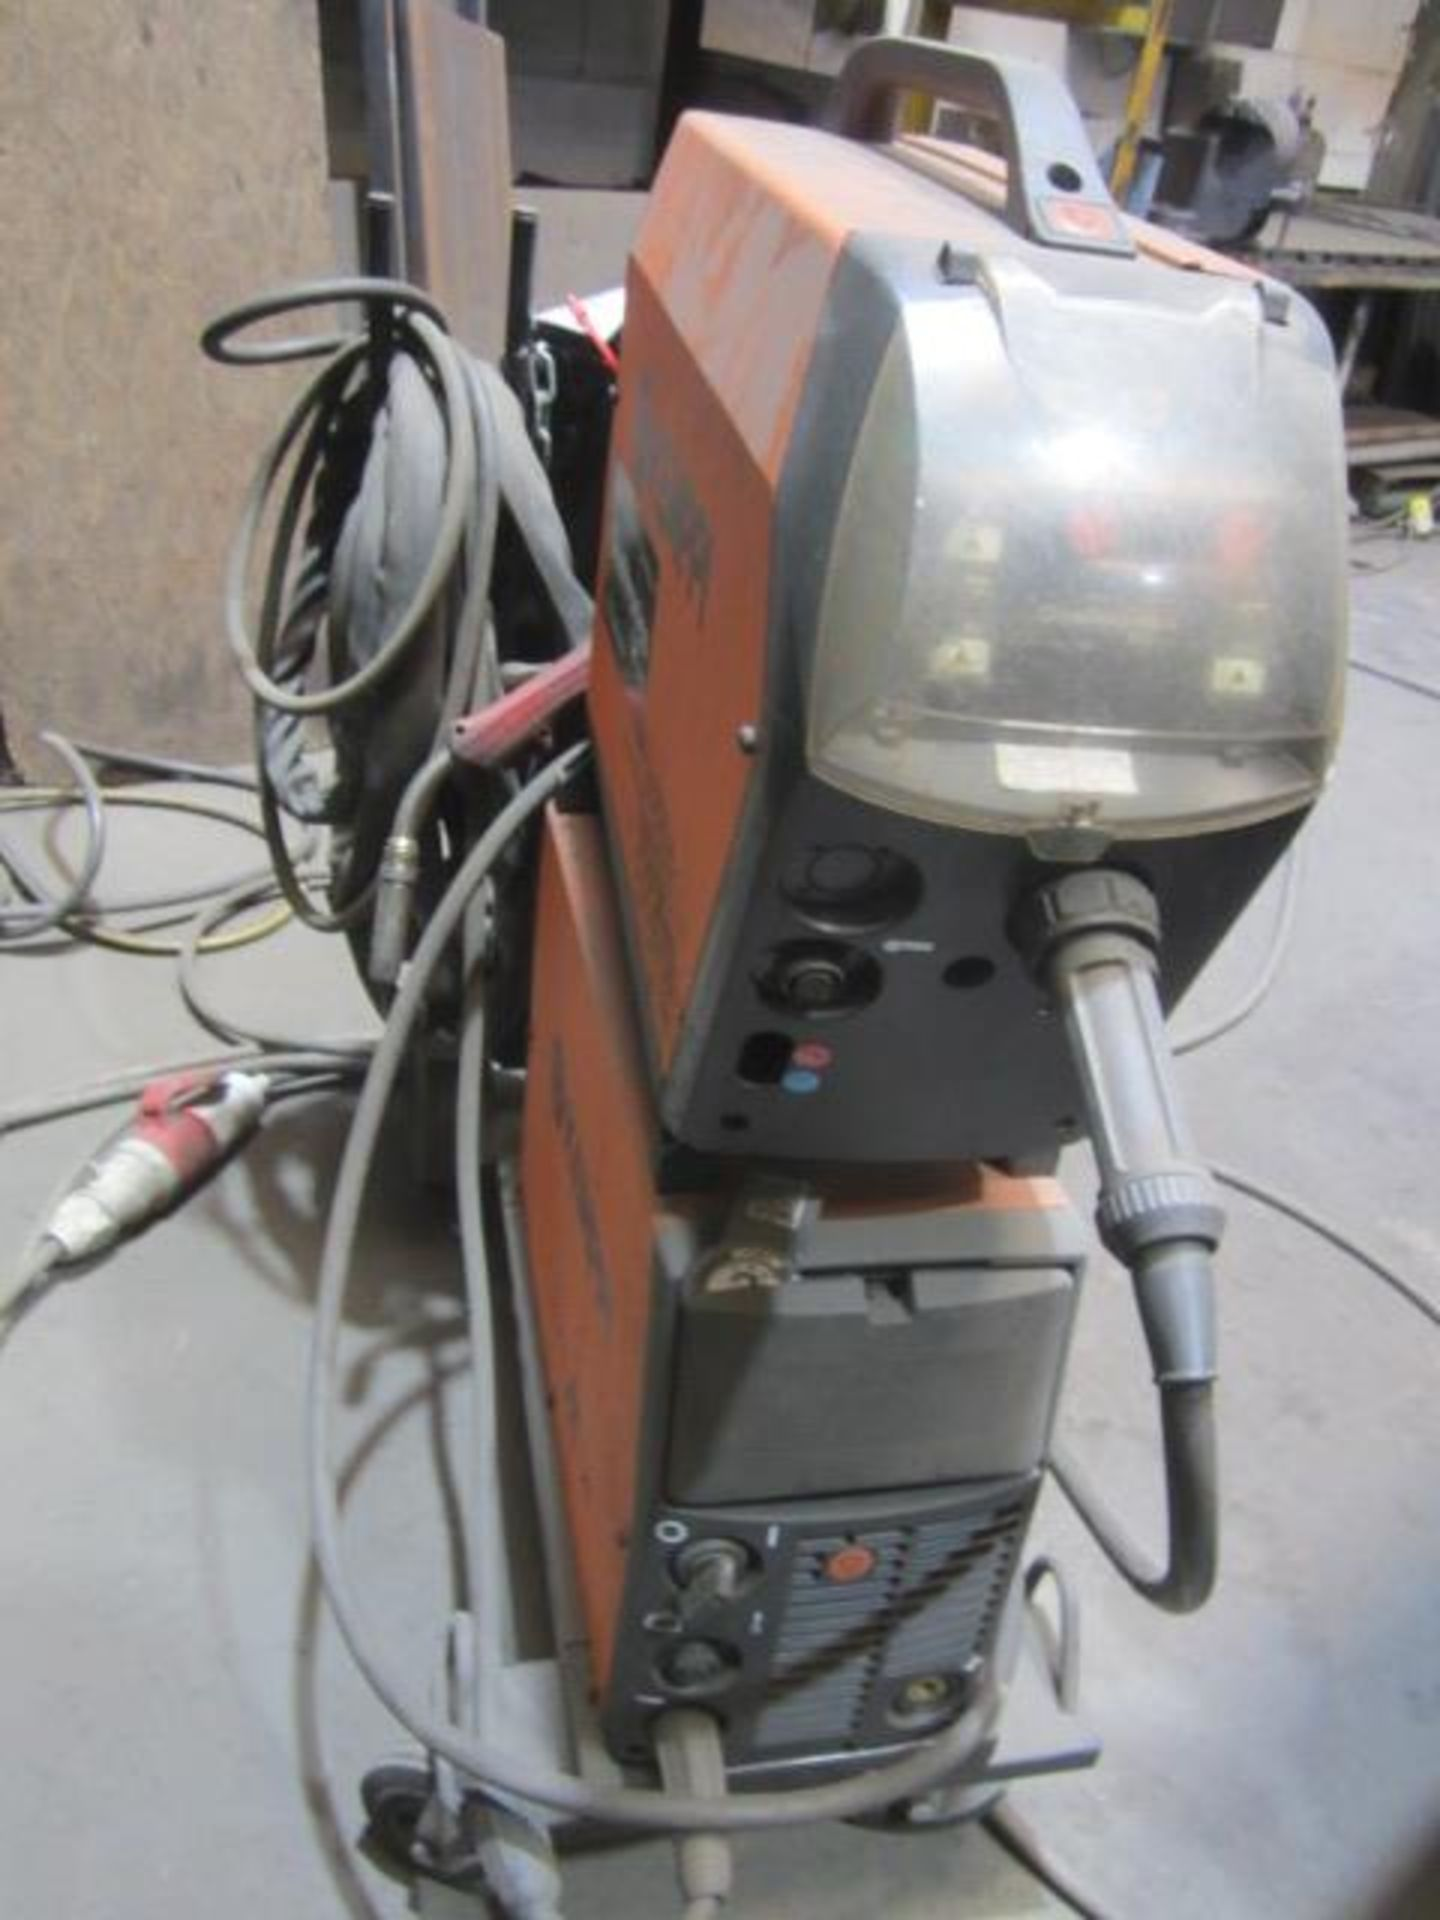 Kemppi Fast Mig M420 mig welder, serial no. 2674175, with Fast Mig MXF65 wire feeder, serial no. - Image 2 of 7